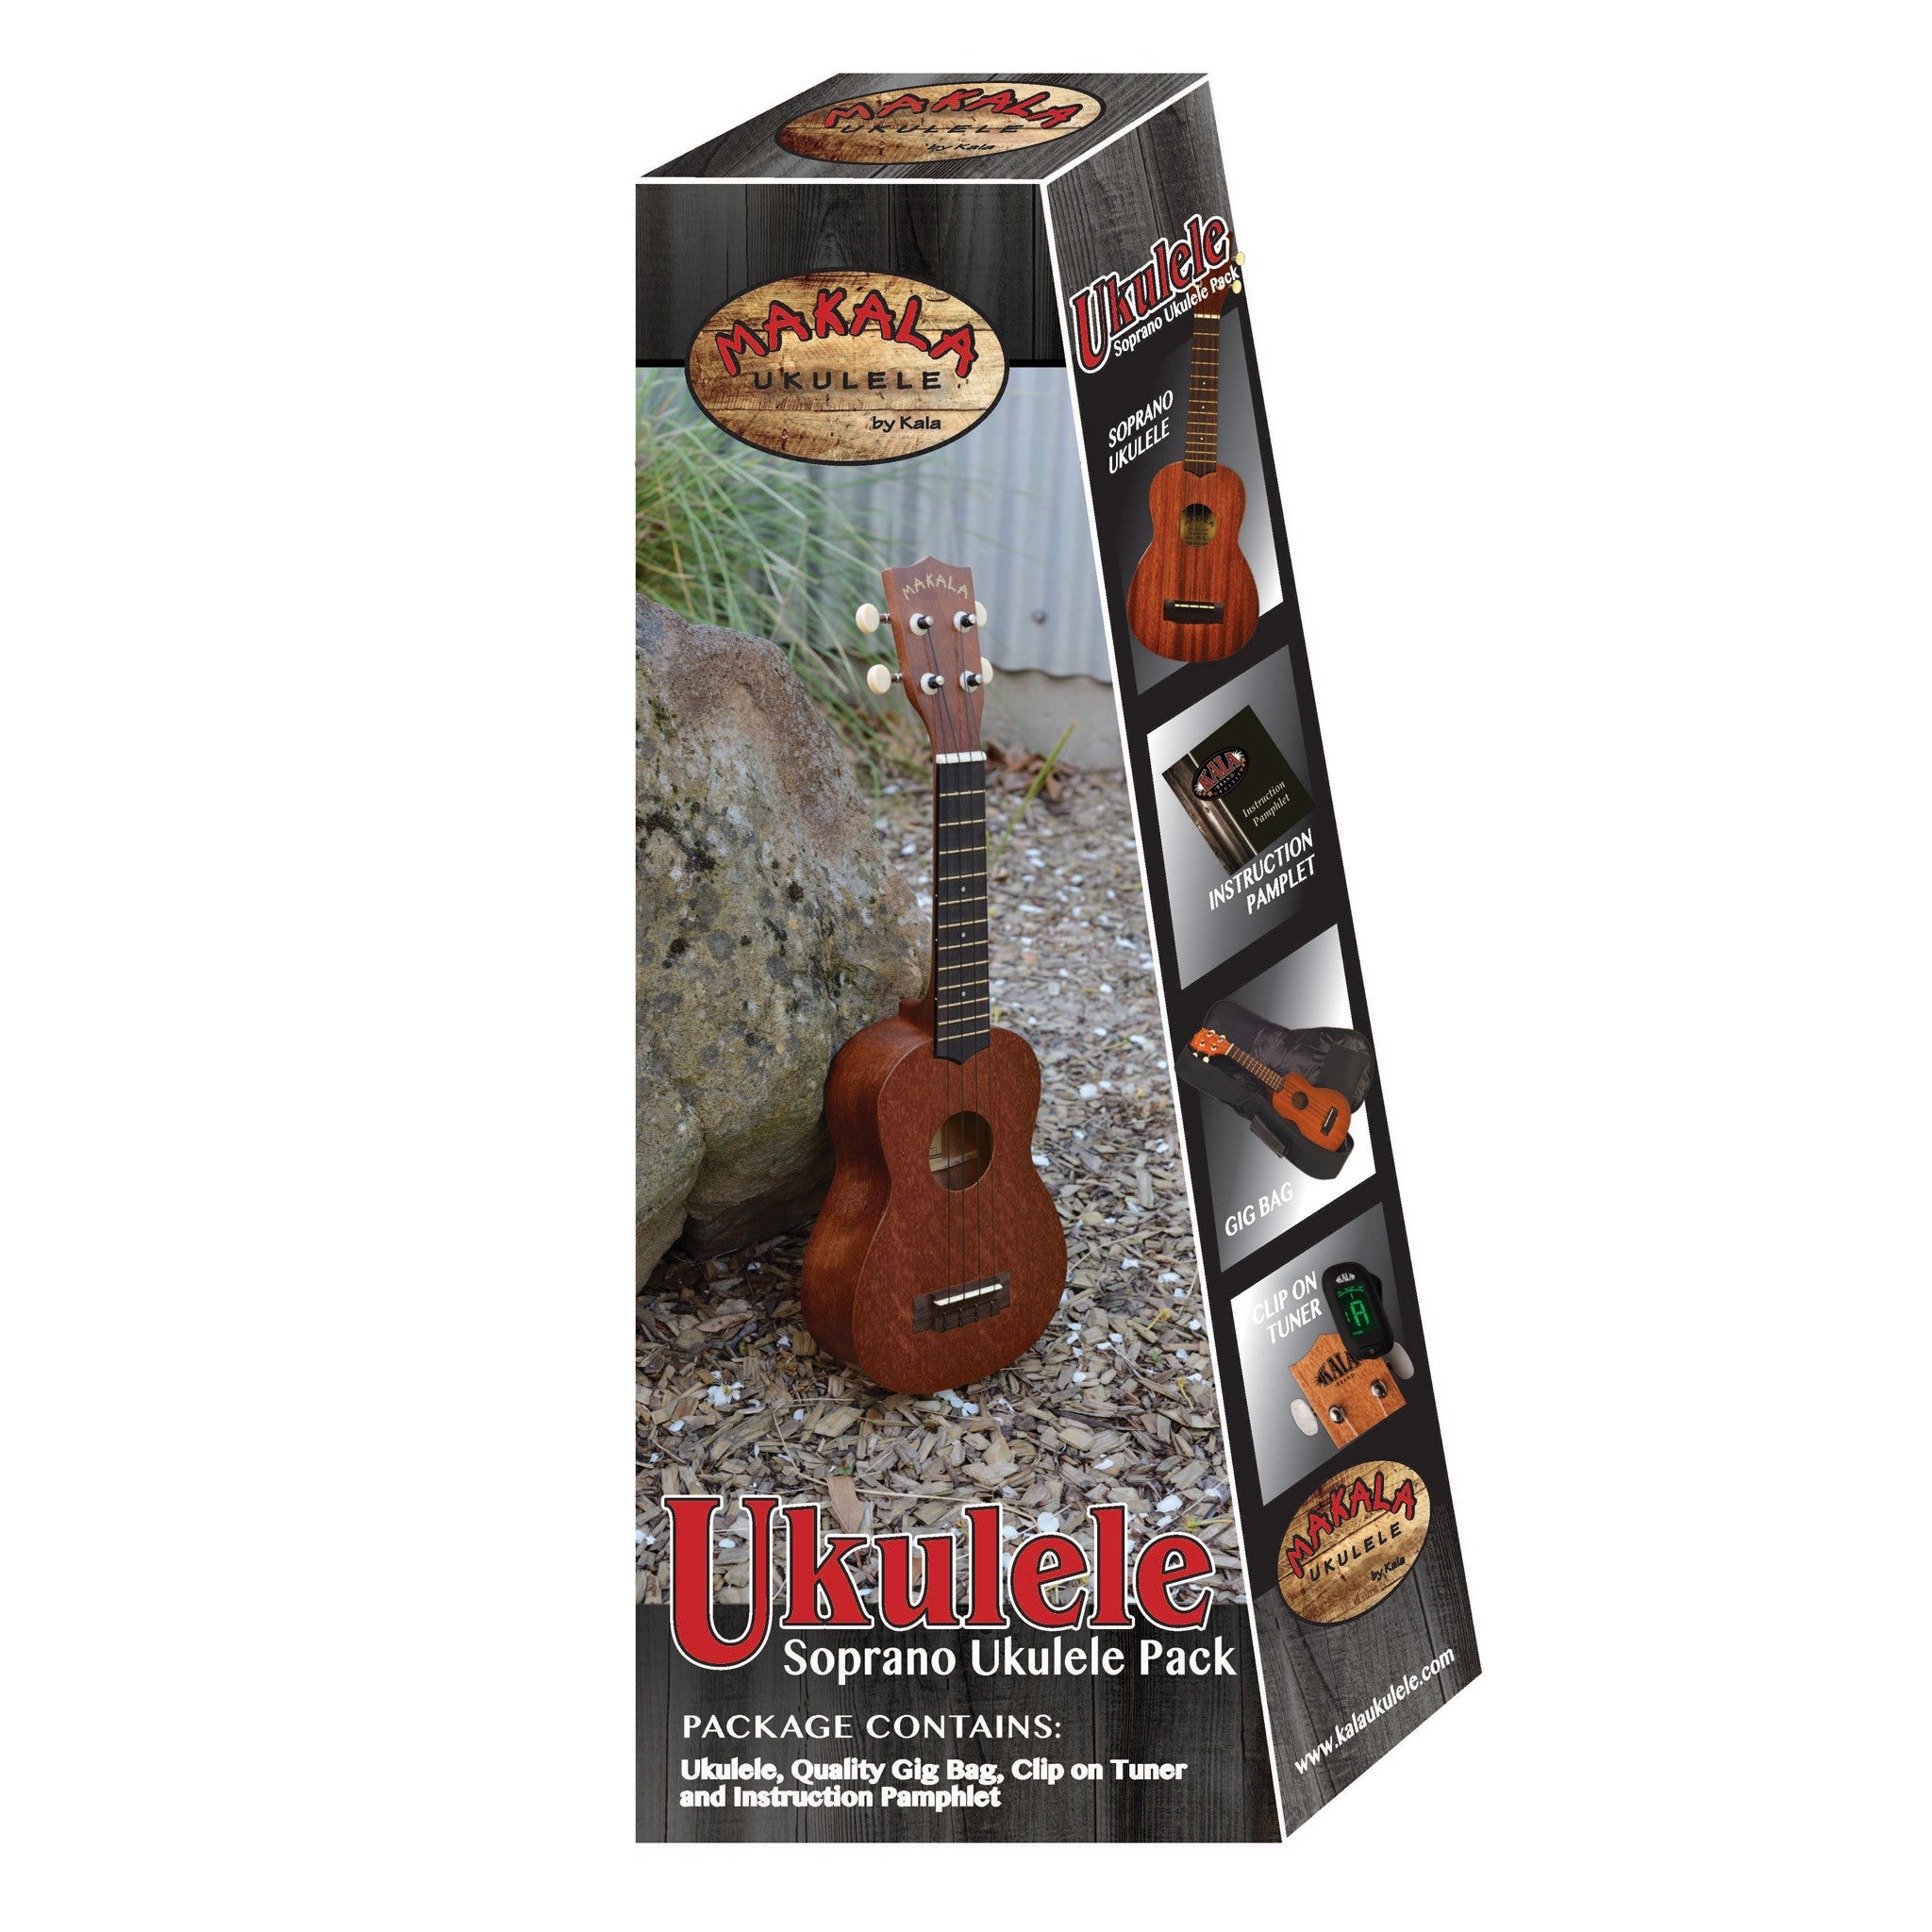 kala brand concert ukulele makala pack groundswell supply. Black Bedroom Furniture Sets. Home Design Ideas